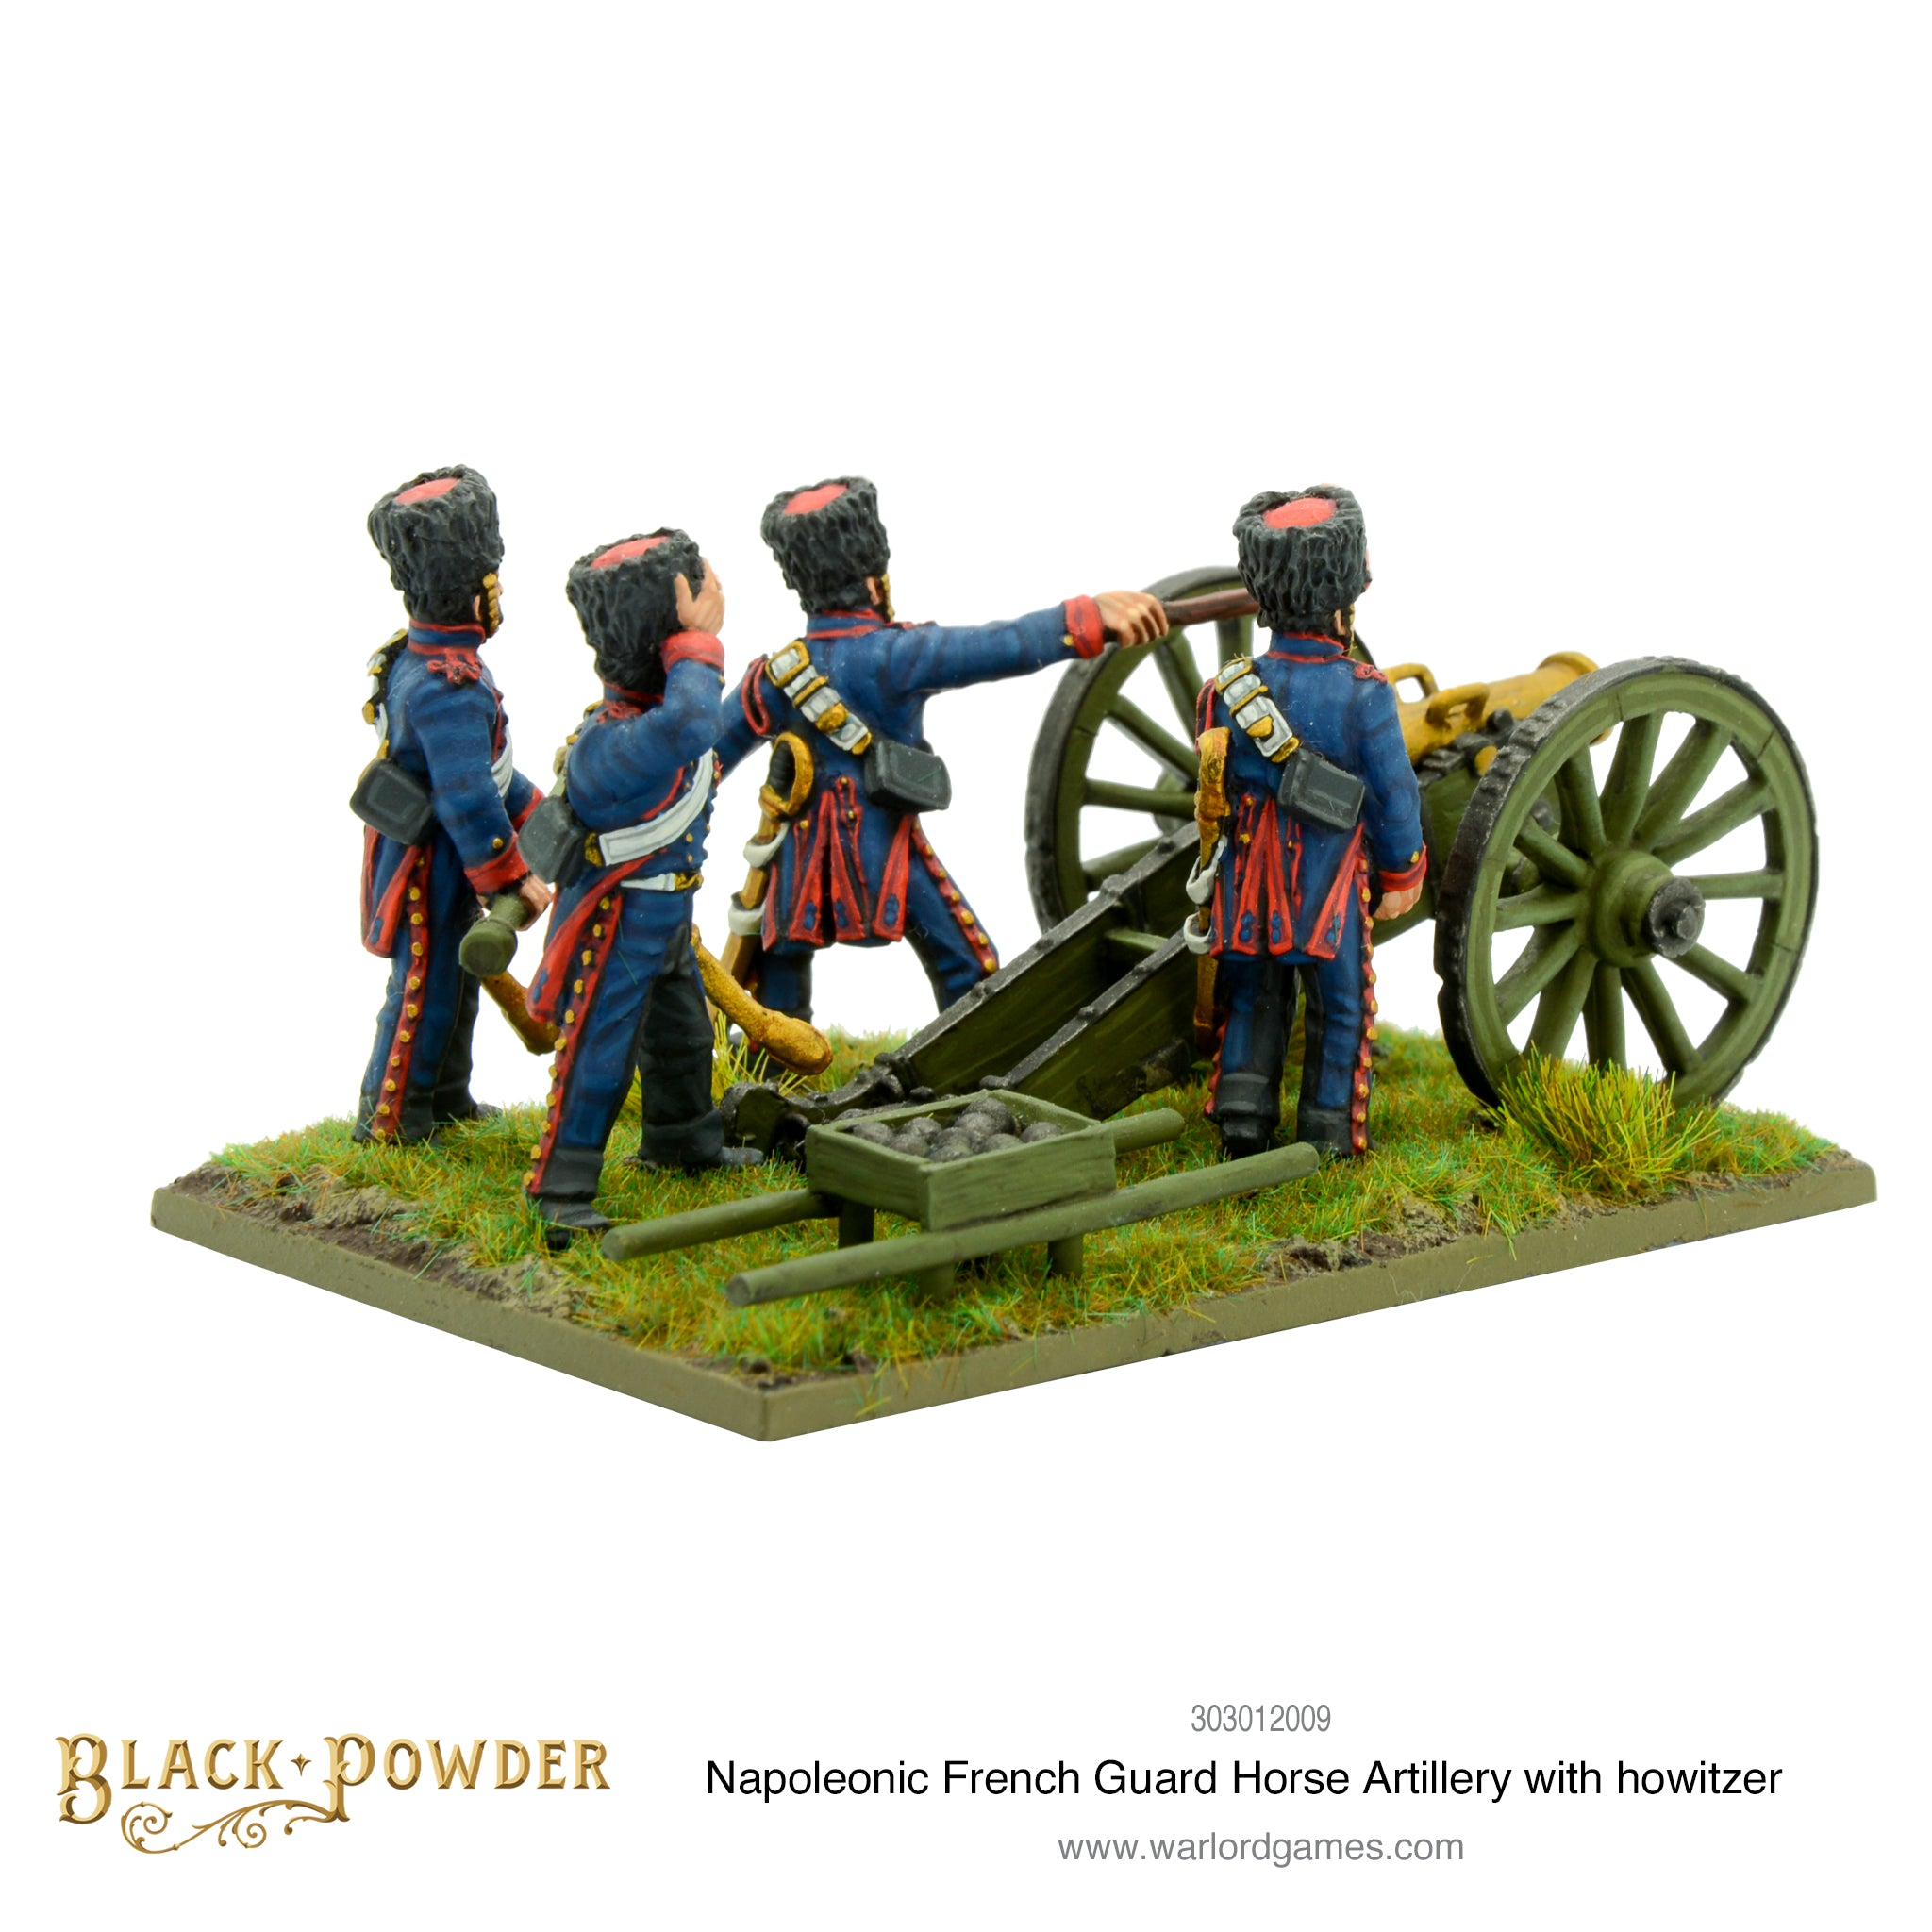 Napoleonic French Guard Horse Artillery with howitzer